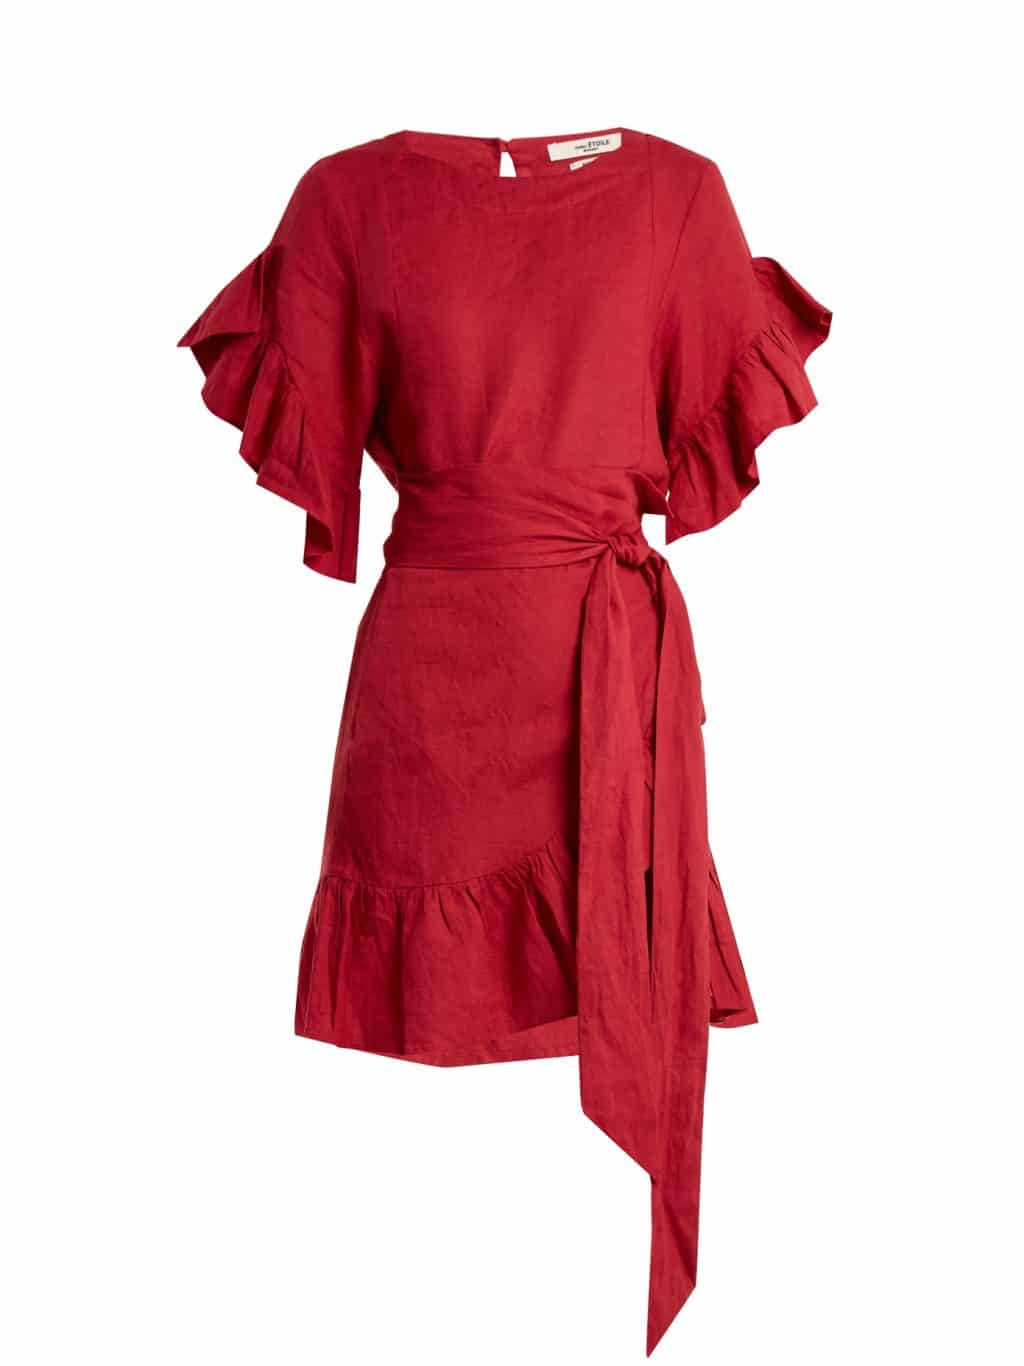 ISABEL MARANT ÉTOILE Delicia Ruffle Trimmed Linen Wrap Rose Red Dress